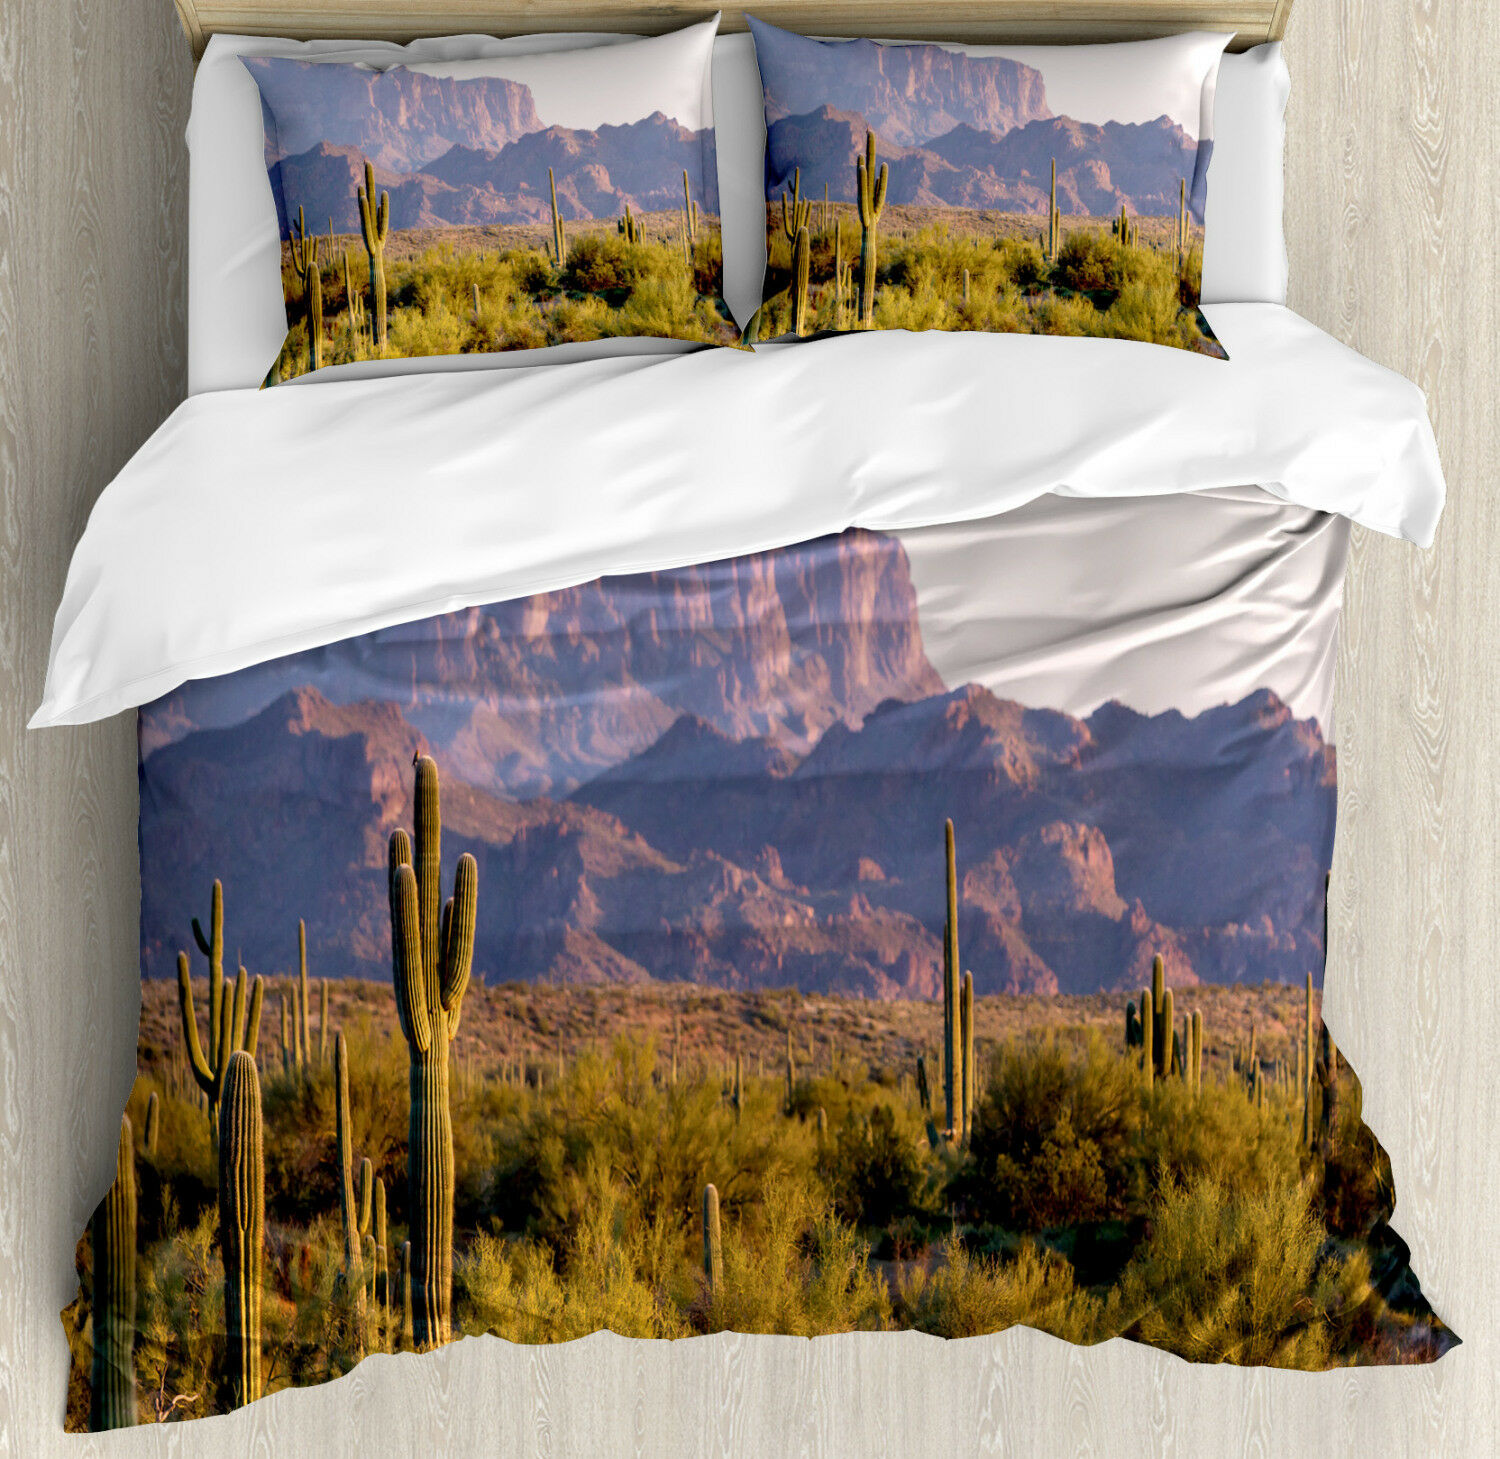 Landscape Duvet Cover Set with Pillow Shams Cactus Mountain in Spring Print